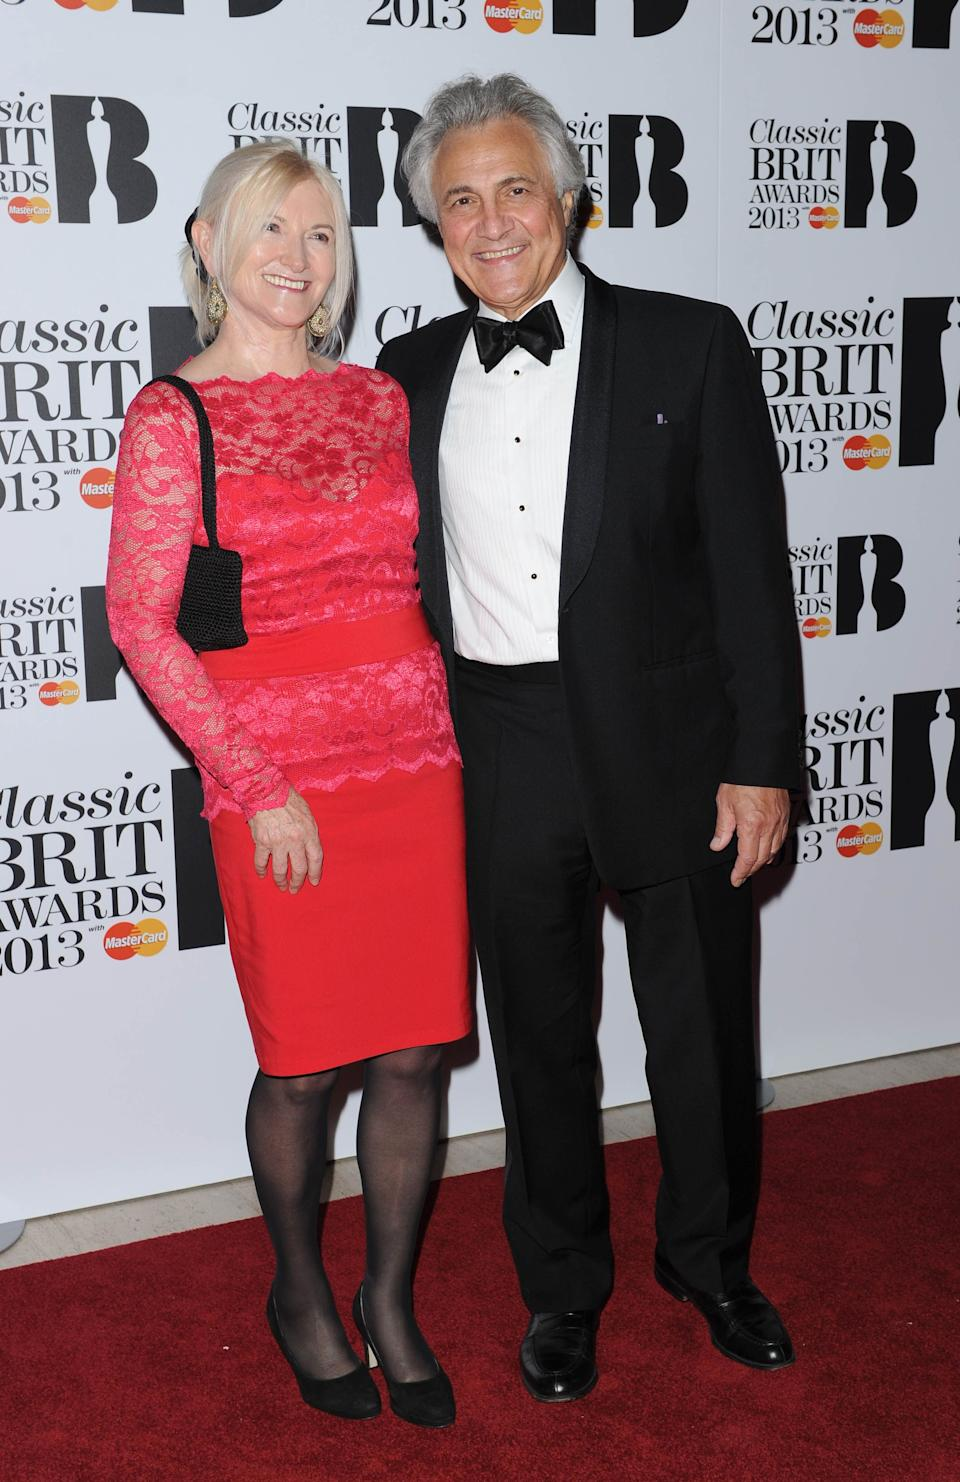 Classical Brit Awards, Royal Albert Hall, London, Britain - 02 Oct 2013, Bonnie Suchet And John Suchet (Photo by Brian Rasic/Getty Images)